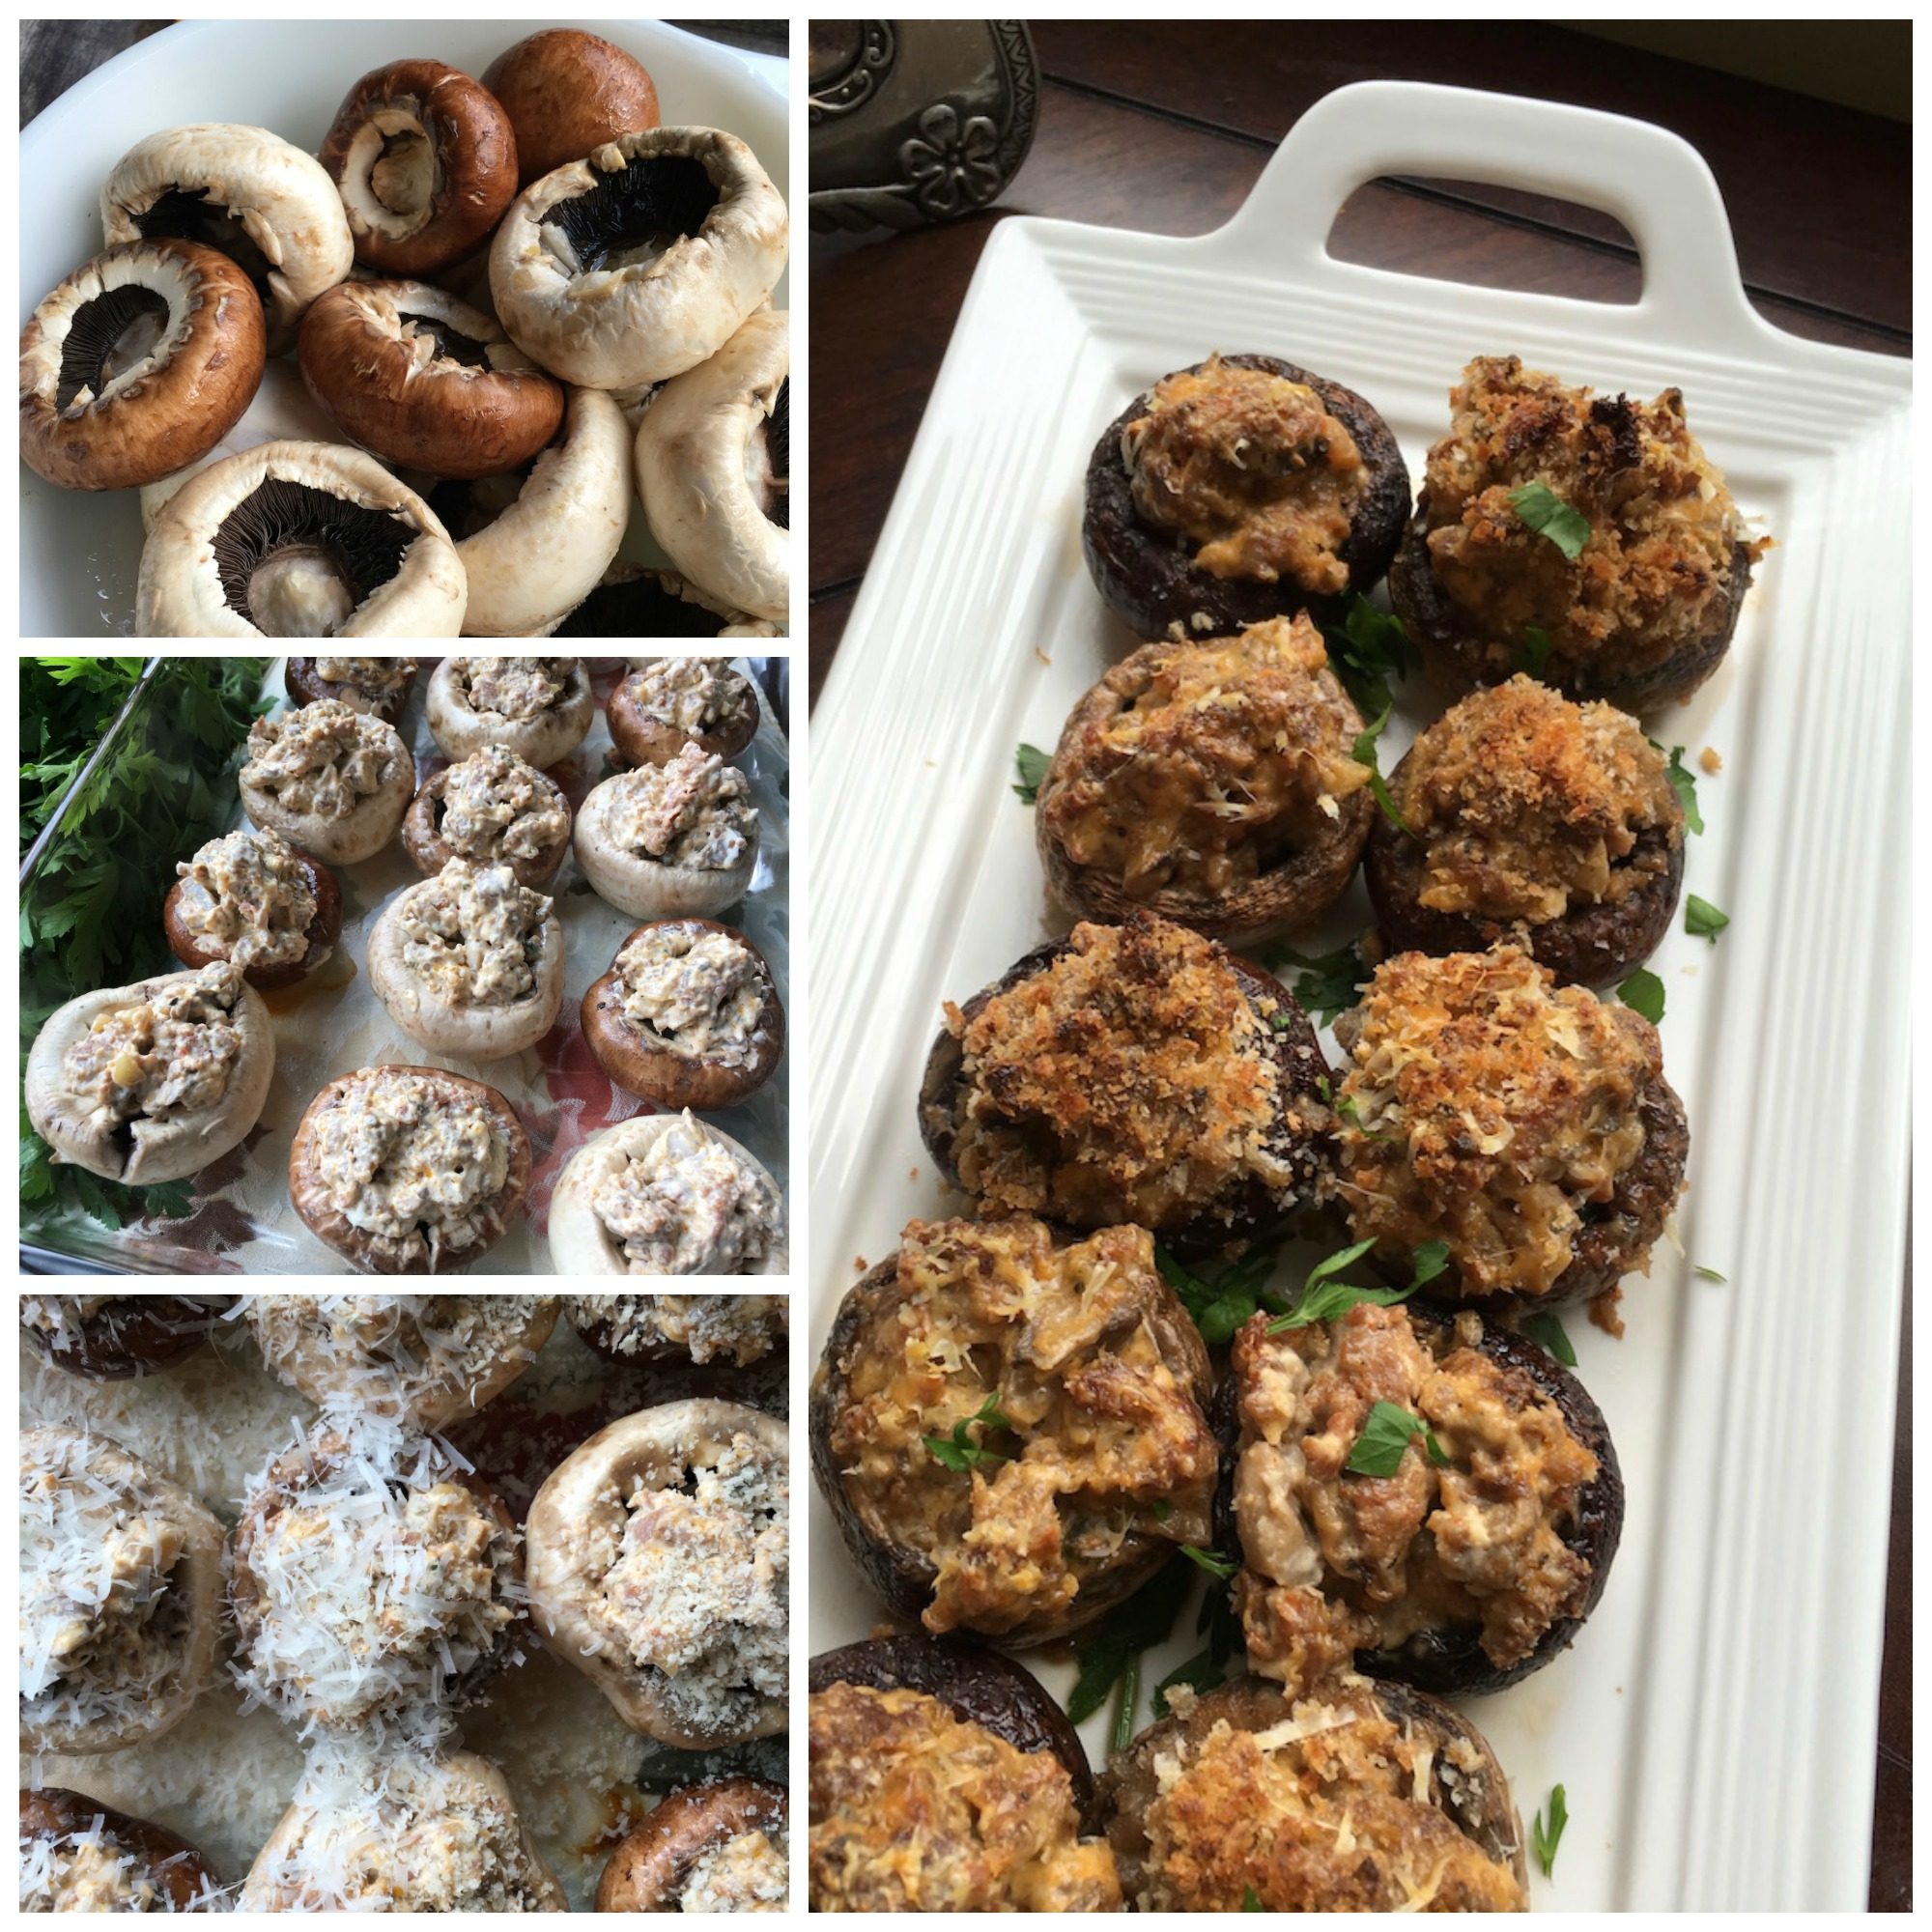 These Stuffed Mushrooms with Sausage and Cream Cheese are a zesty appetizer to serve when entertaining. They are easy to make and your guests will love them!